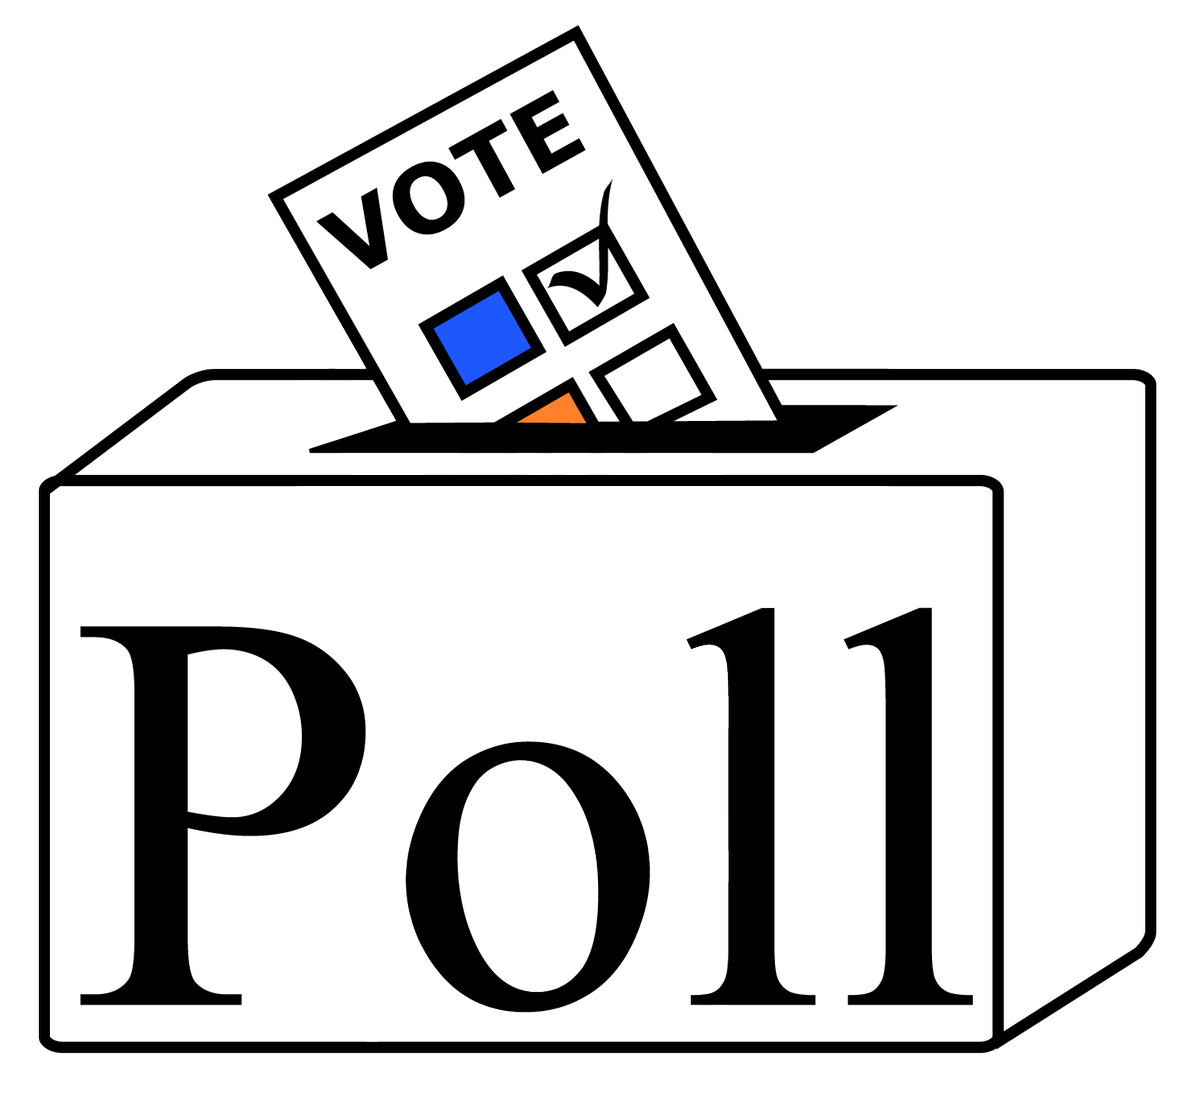 Voting clipart primary election. Poll jan